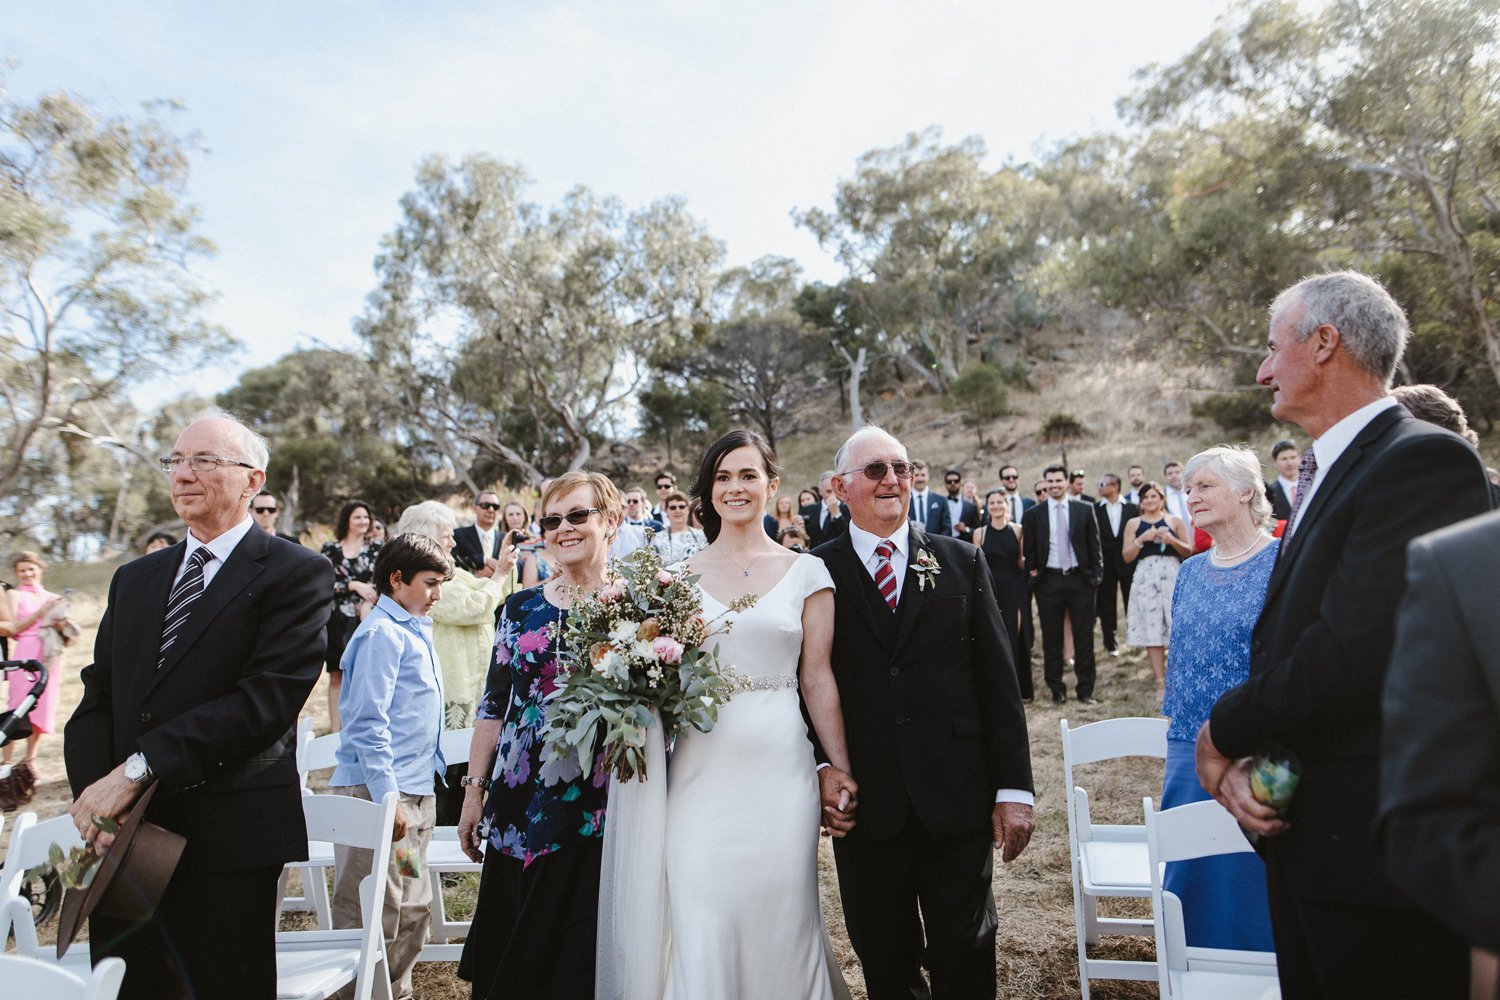 063-diy-australian-albury-farm-wedding-lisa-lasanka